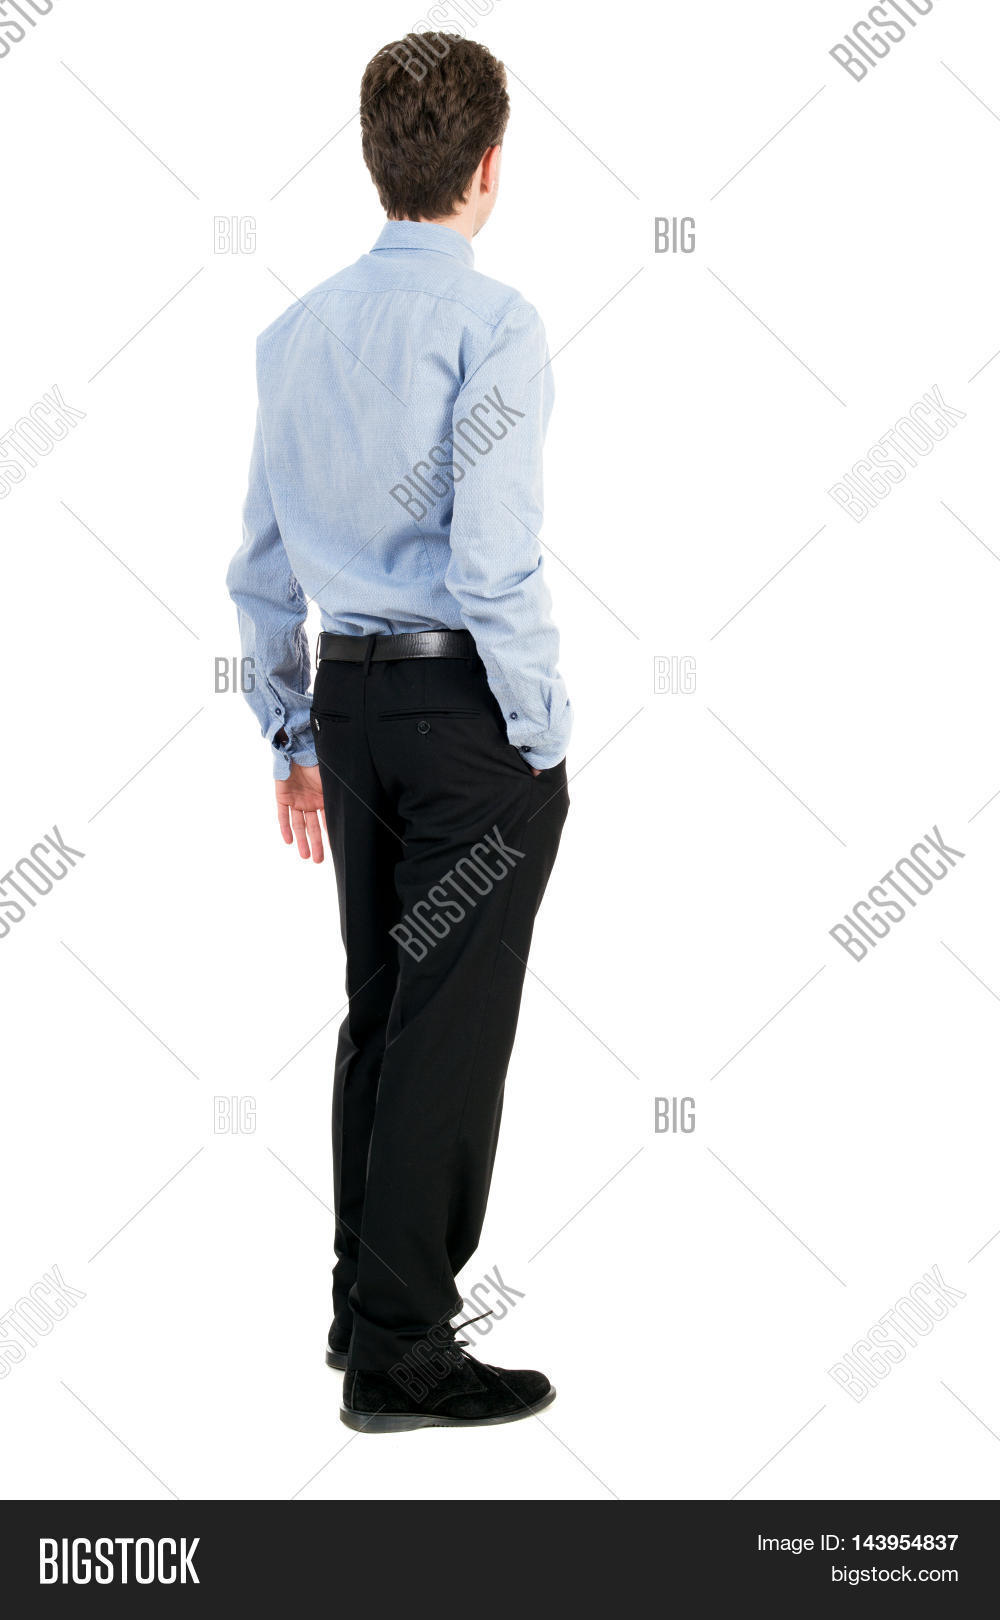 back view business man image photo free trial bigstock